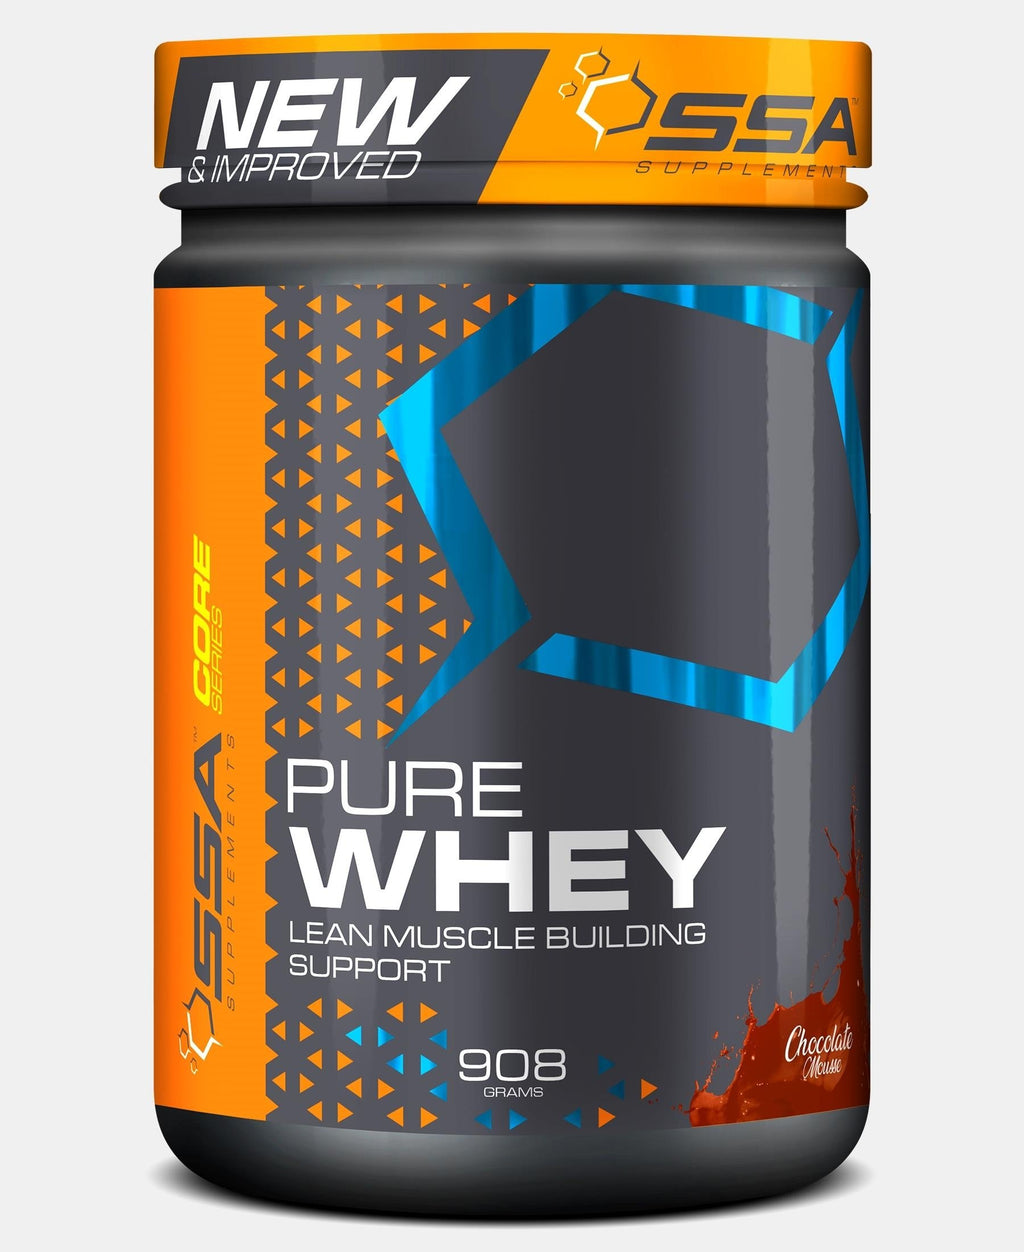 908G Pure Whey Chocolate Mousse - Black